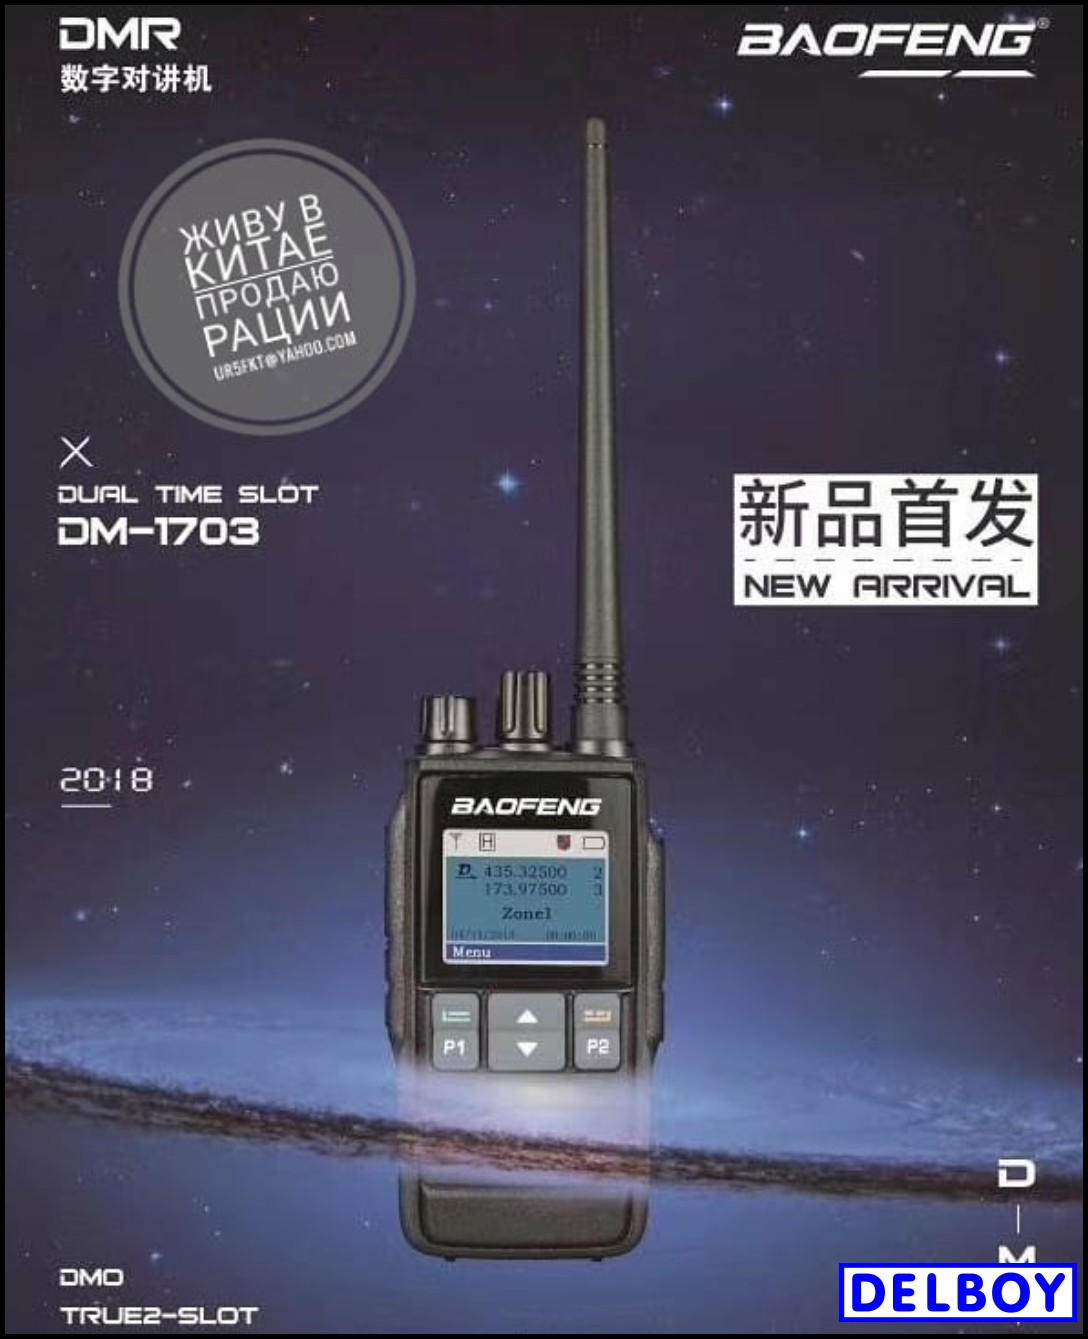 NEW Baofeng DM-1703?